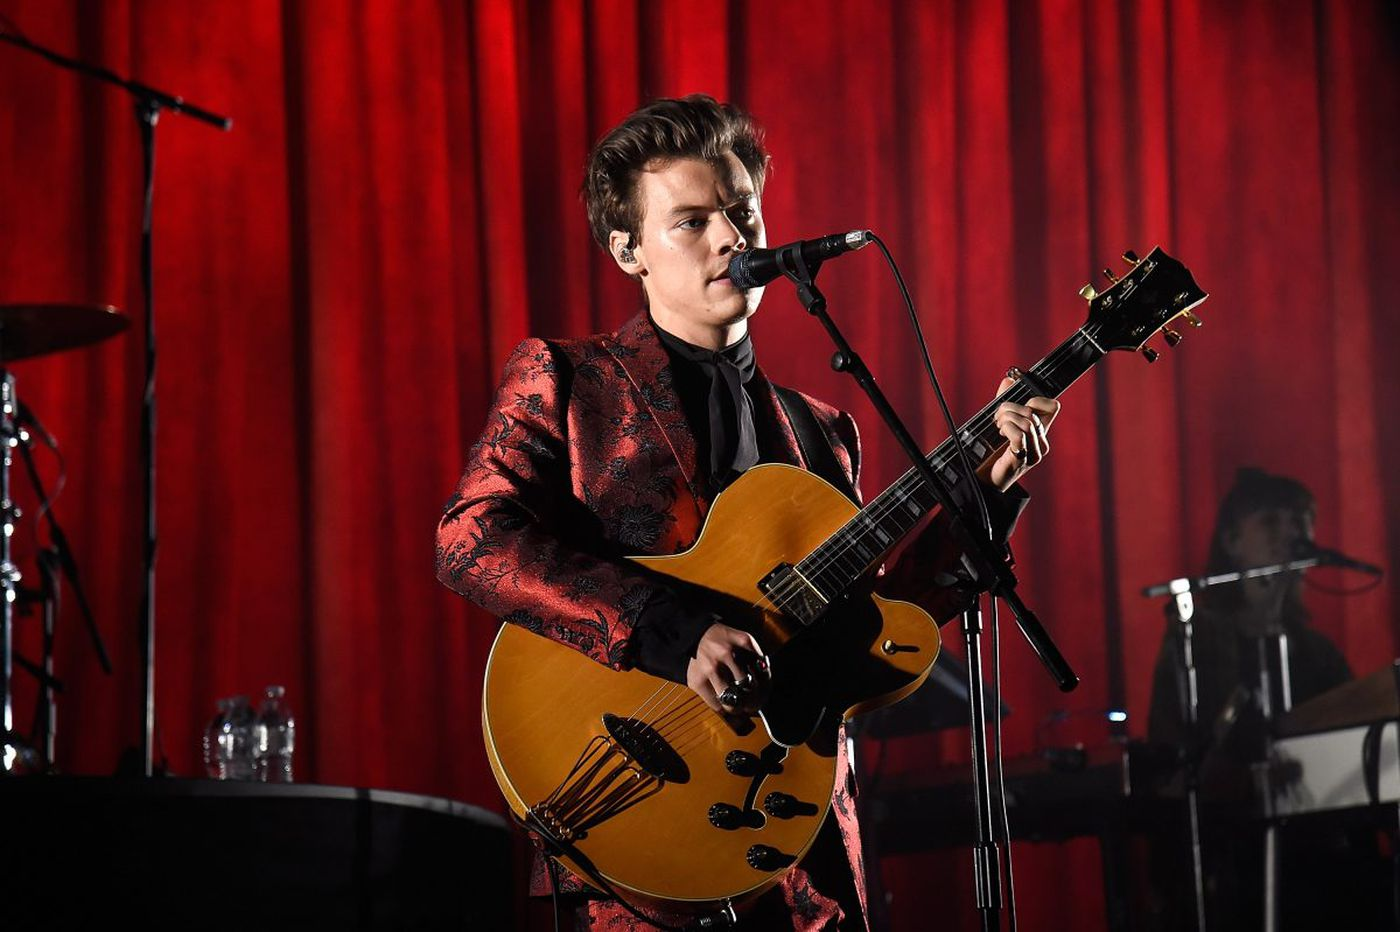 The girls go wild for Harry Styles at the Tower Theater